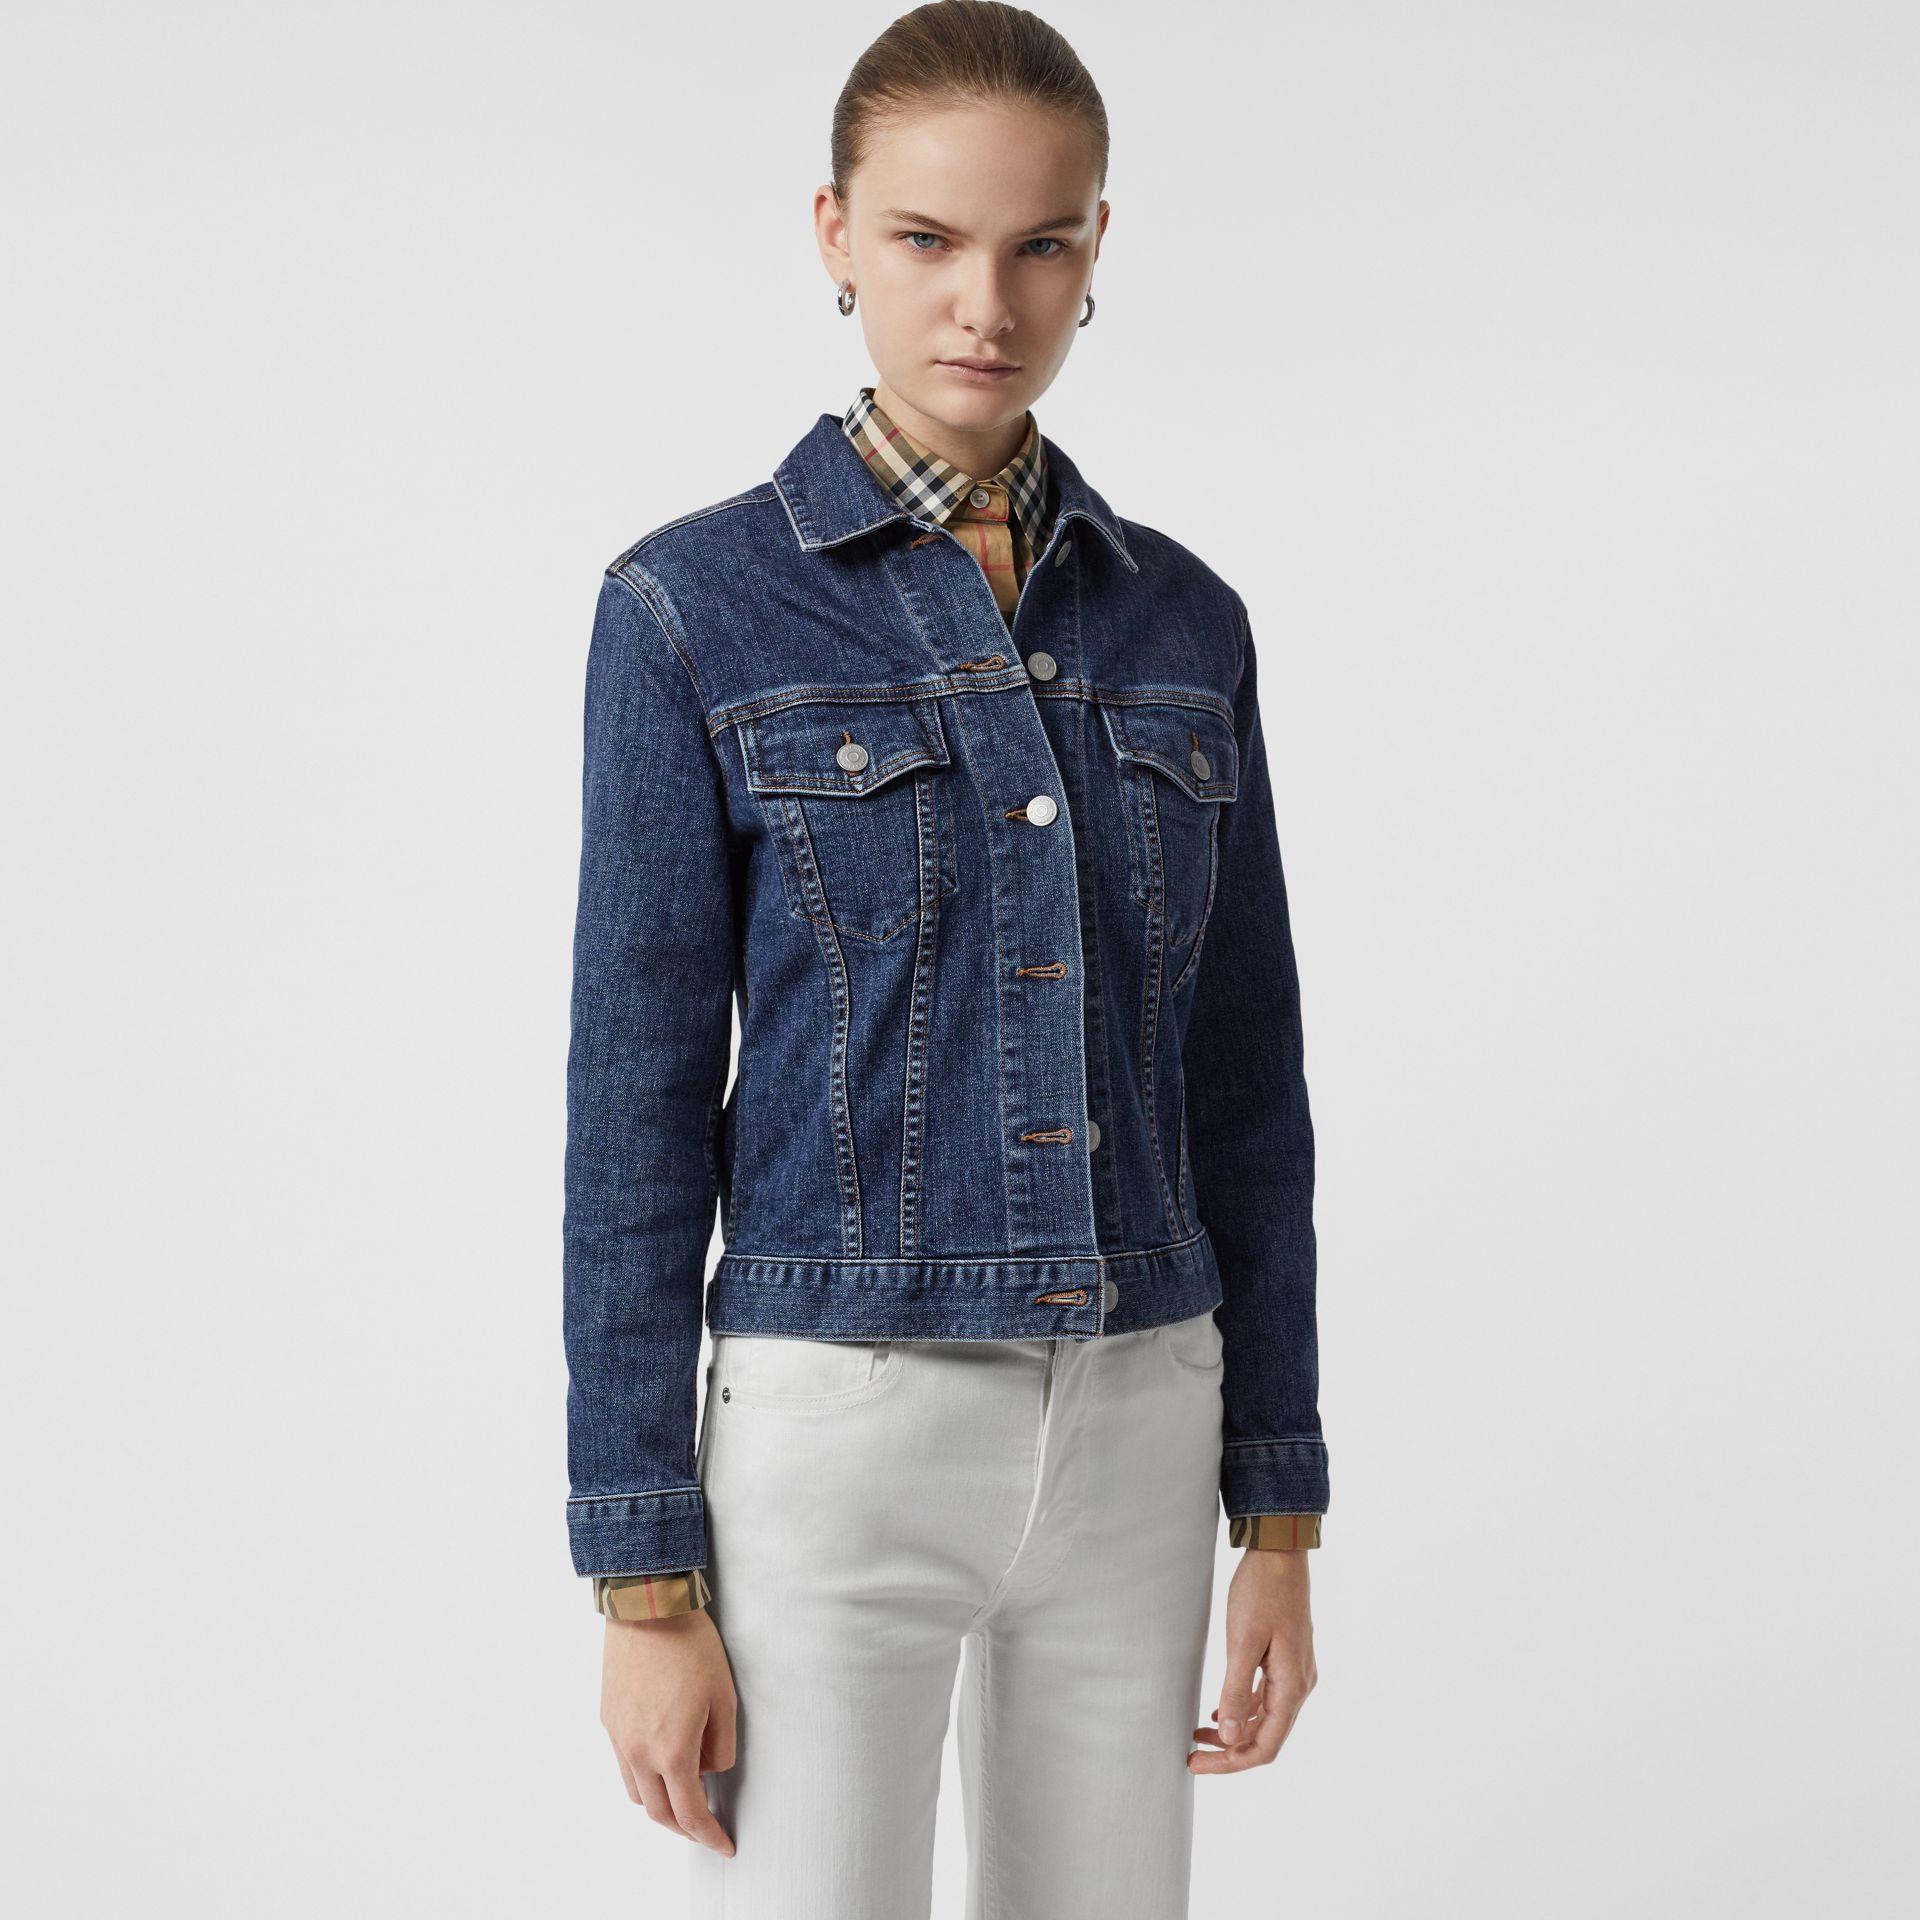 Veste en denim avec écusson brodé (Bleu) - Femme | Burberry - photo de la galerie 2